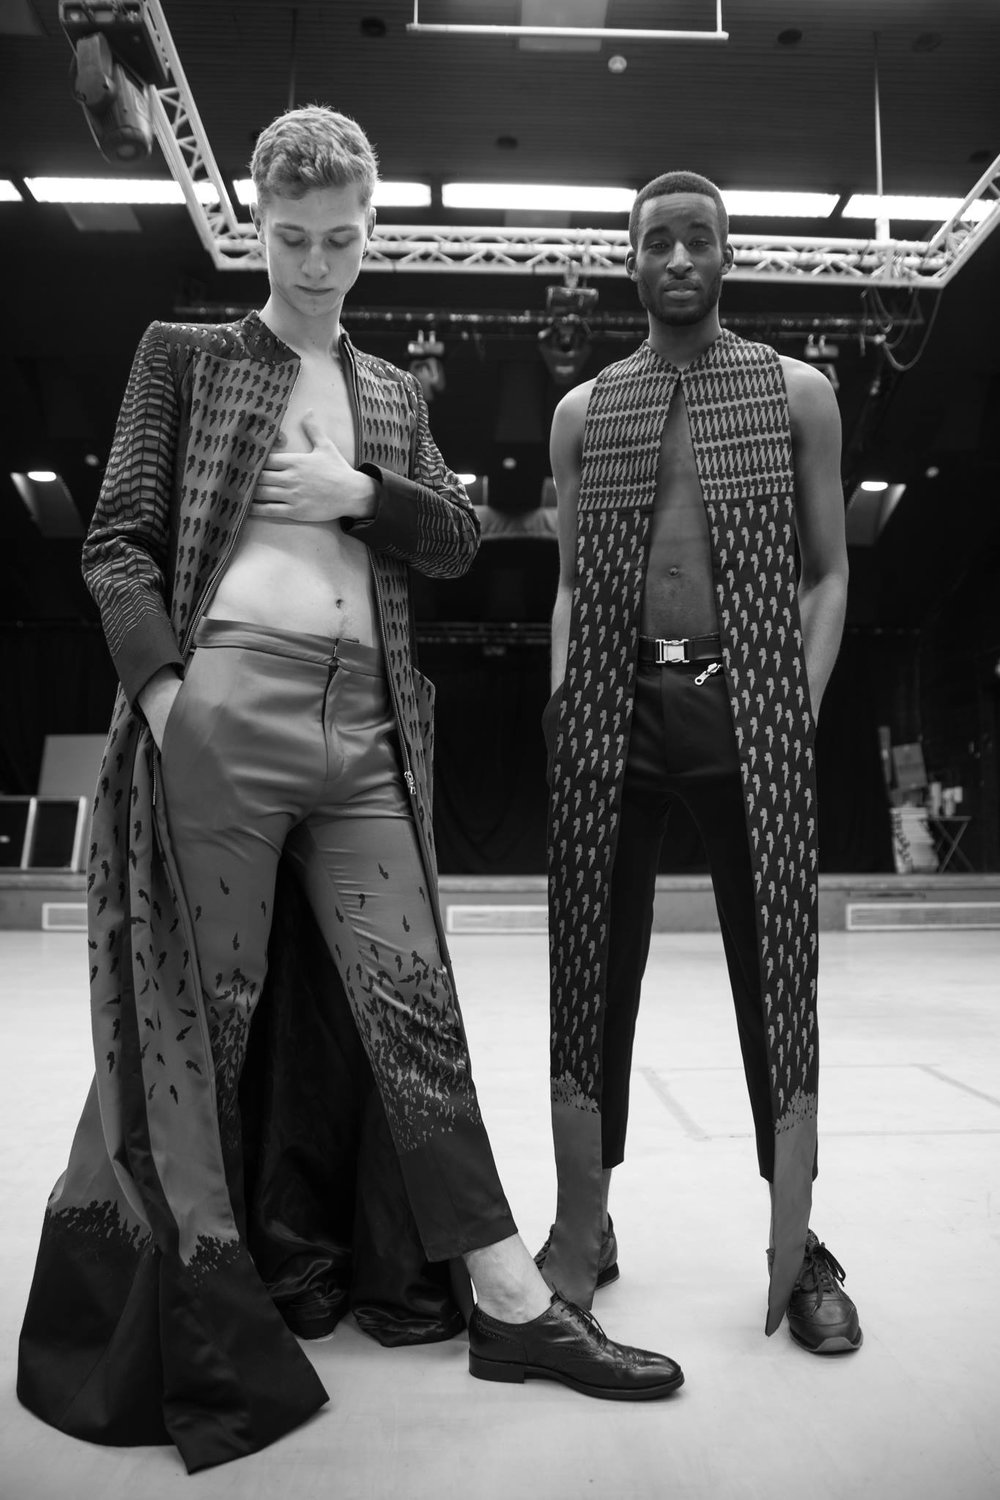 CRUZADO   Ryan graduated in 2015 from Northumbria University with a cutting-edge, urban collection inspired by ruggedly exposed brutalist architecture. His respect for the unpretending honesty of such stark constructions communicate strength and functionality; encapsulating a modern approach to masculinity. The rigid shapes of the architecture create contrasting and angular areas of shadow and light, which too have informed the structure and shape of his work. He is particularly inspired by the serenity of Tadao Ando's architecture, and uses the muse of 'The New Crusader' as a human embodiment of the ethos behind his designs.